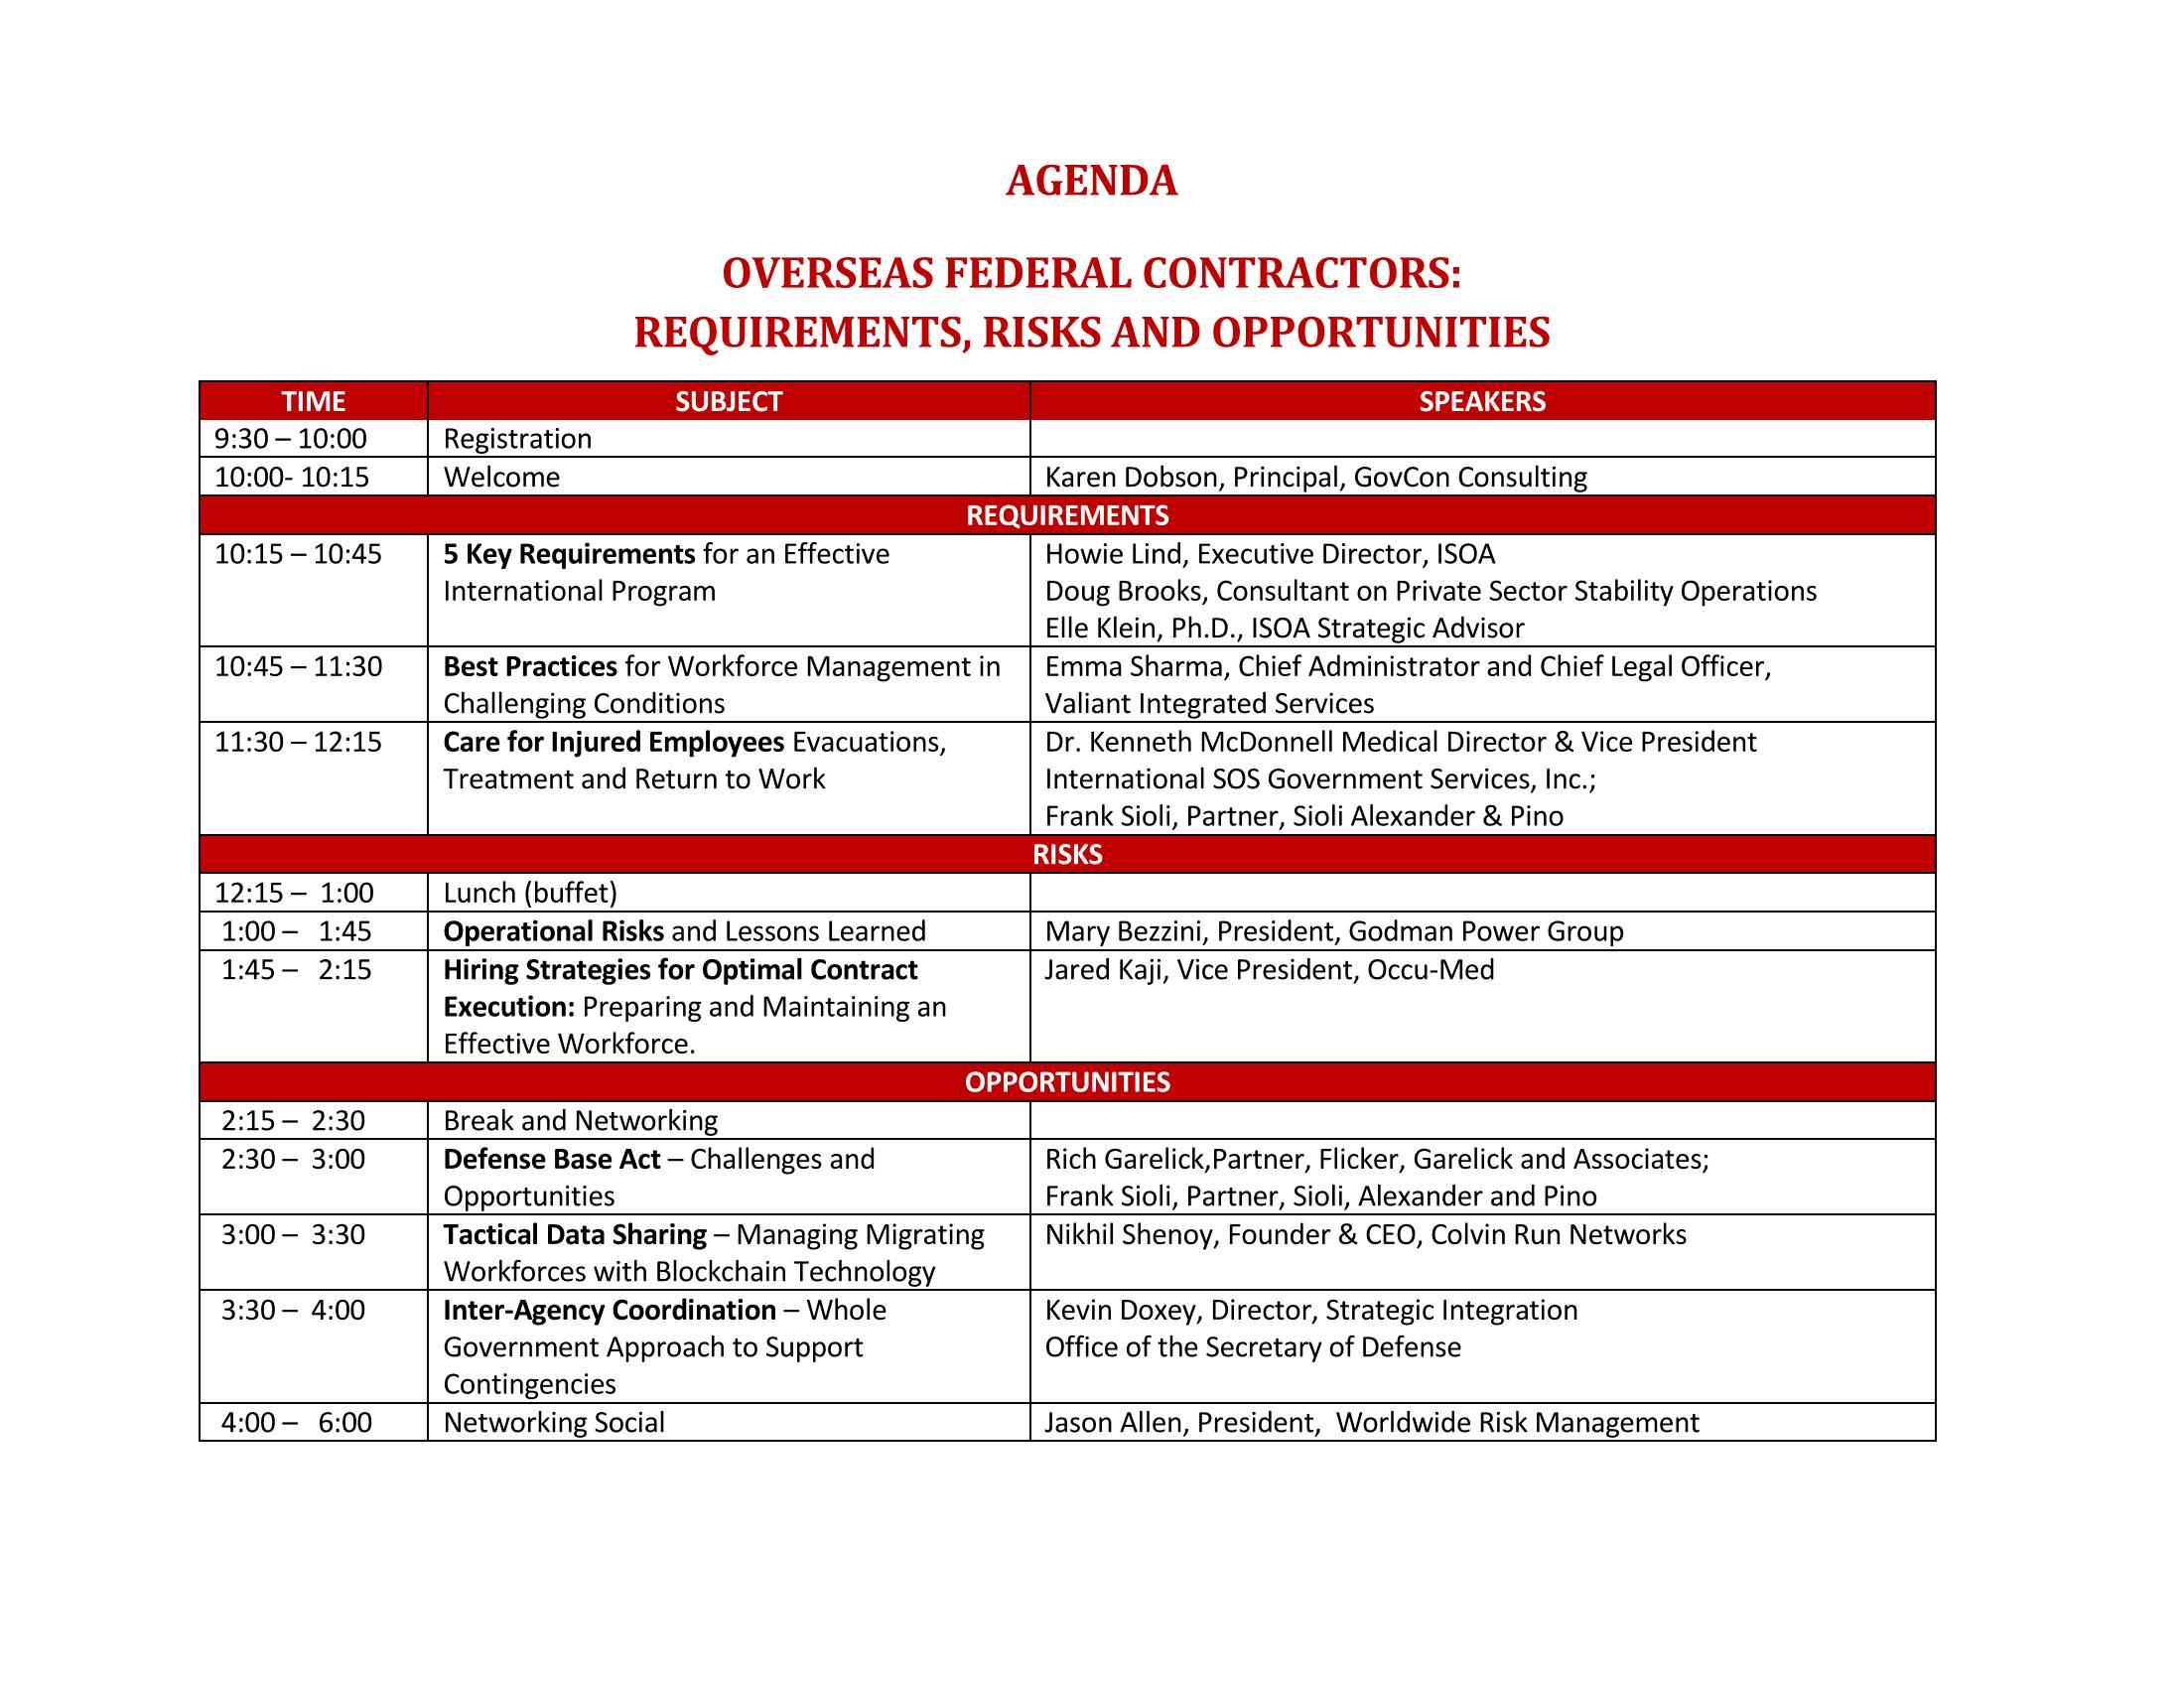 Agenda Oct 4 Amended (3)_Page_1.jpeg